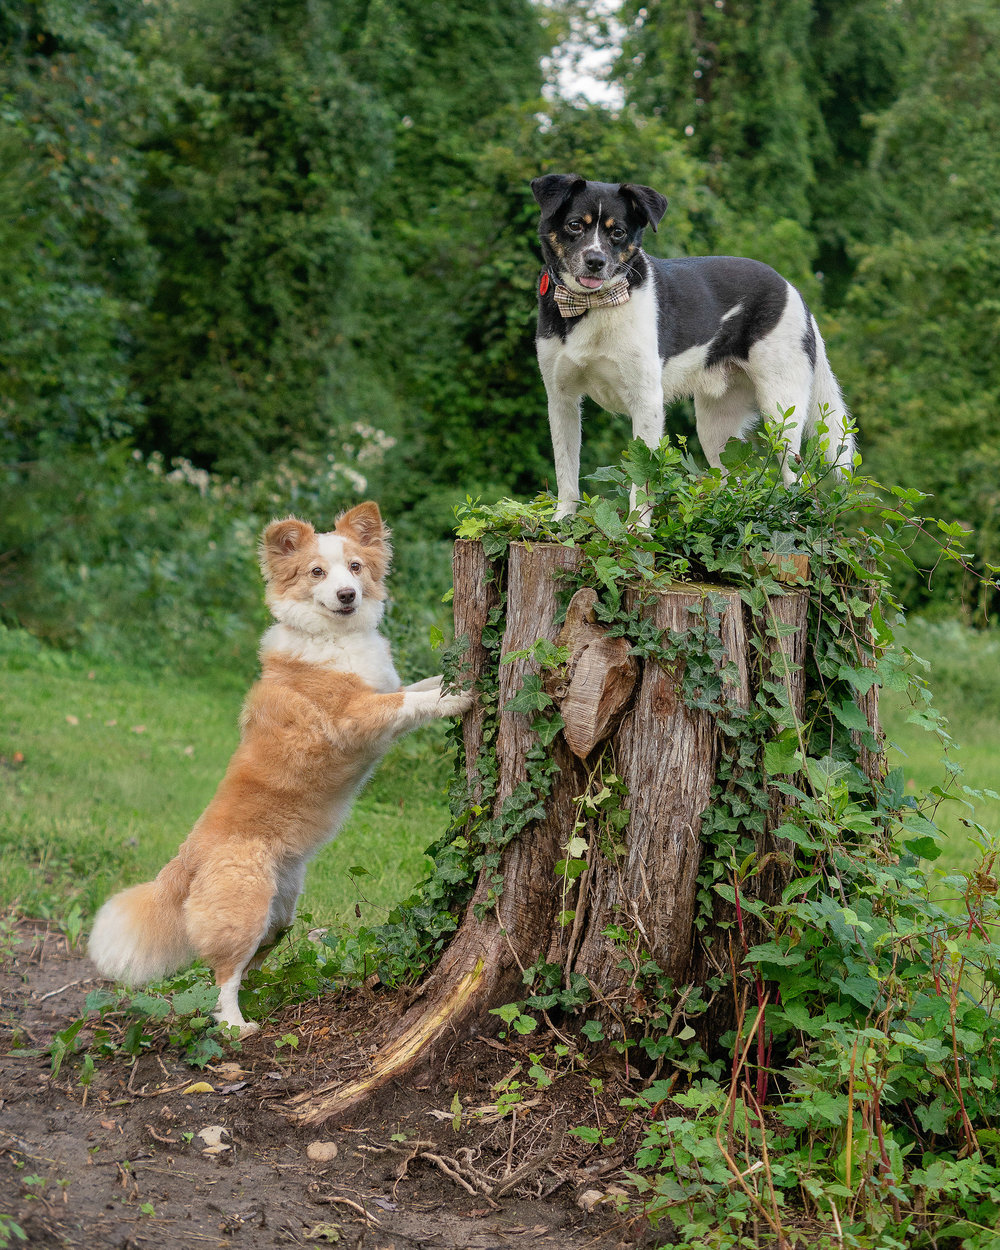 pet photography - Photoshop Dogs Together.jpg